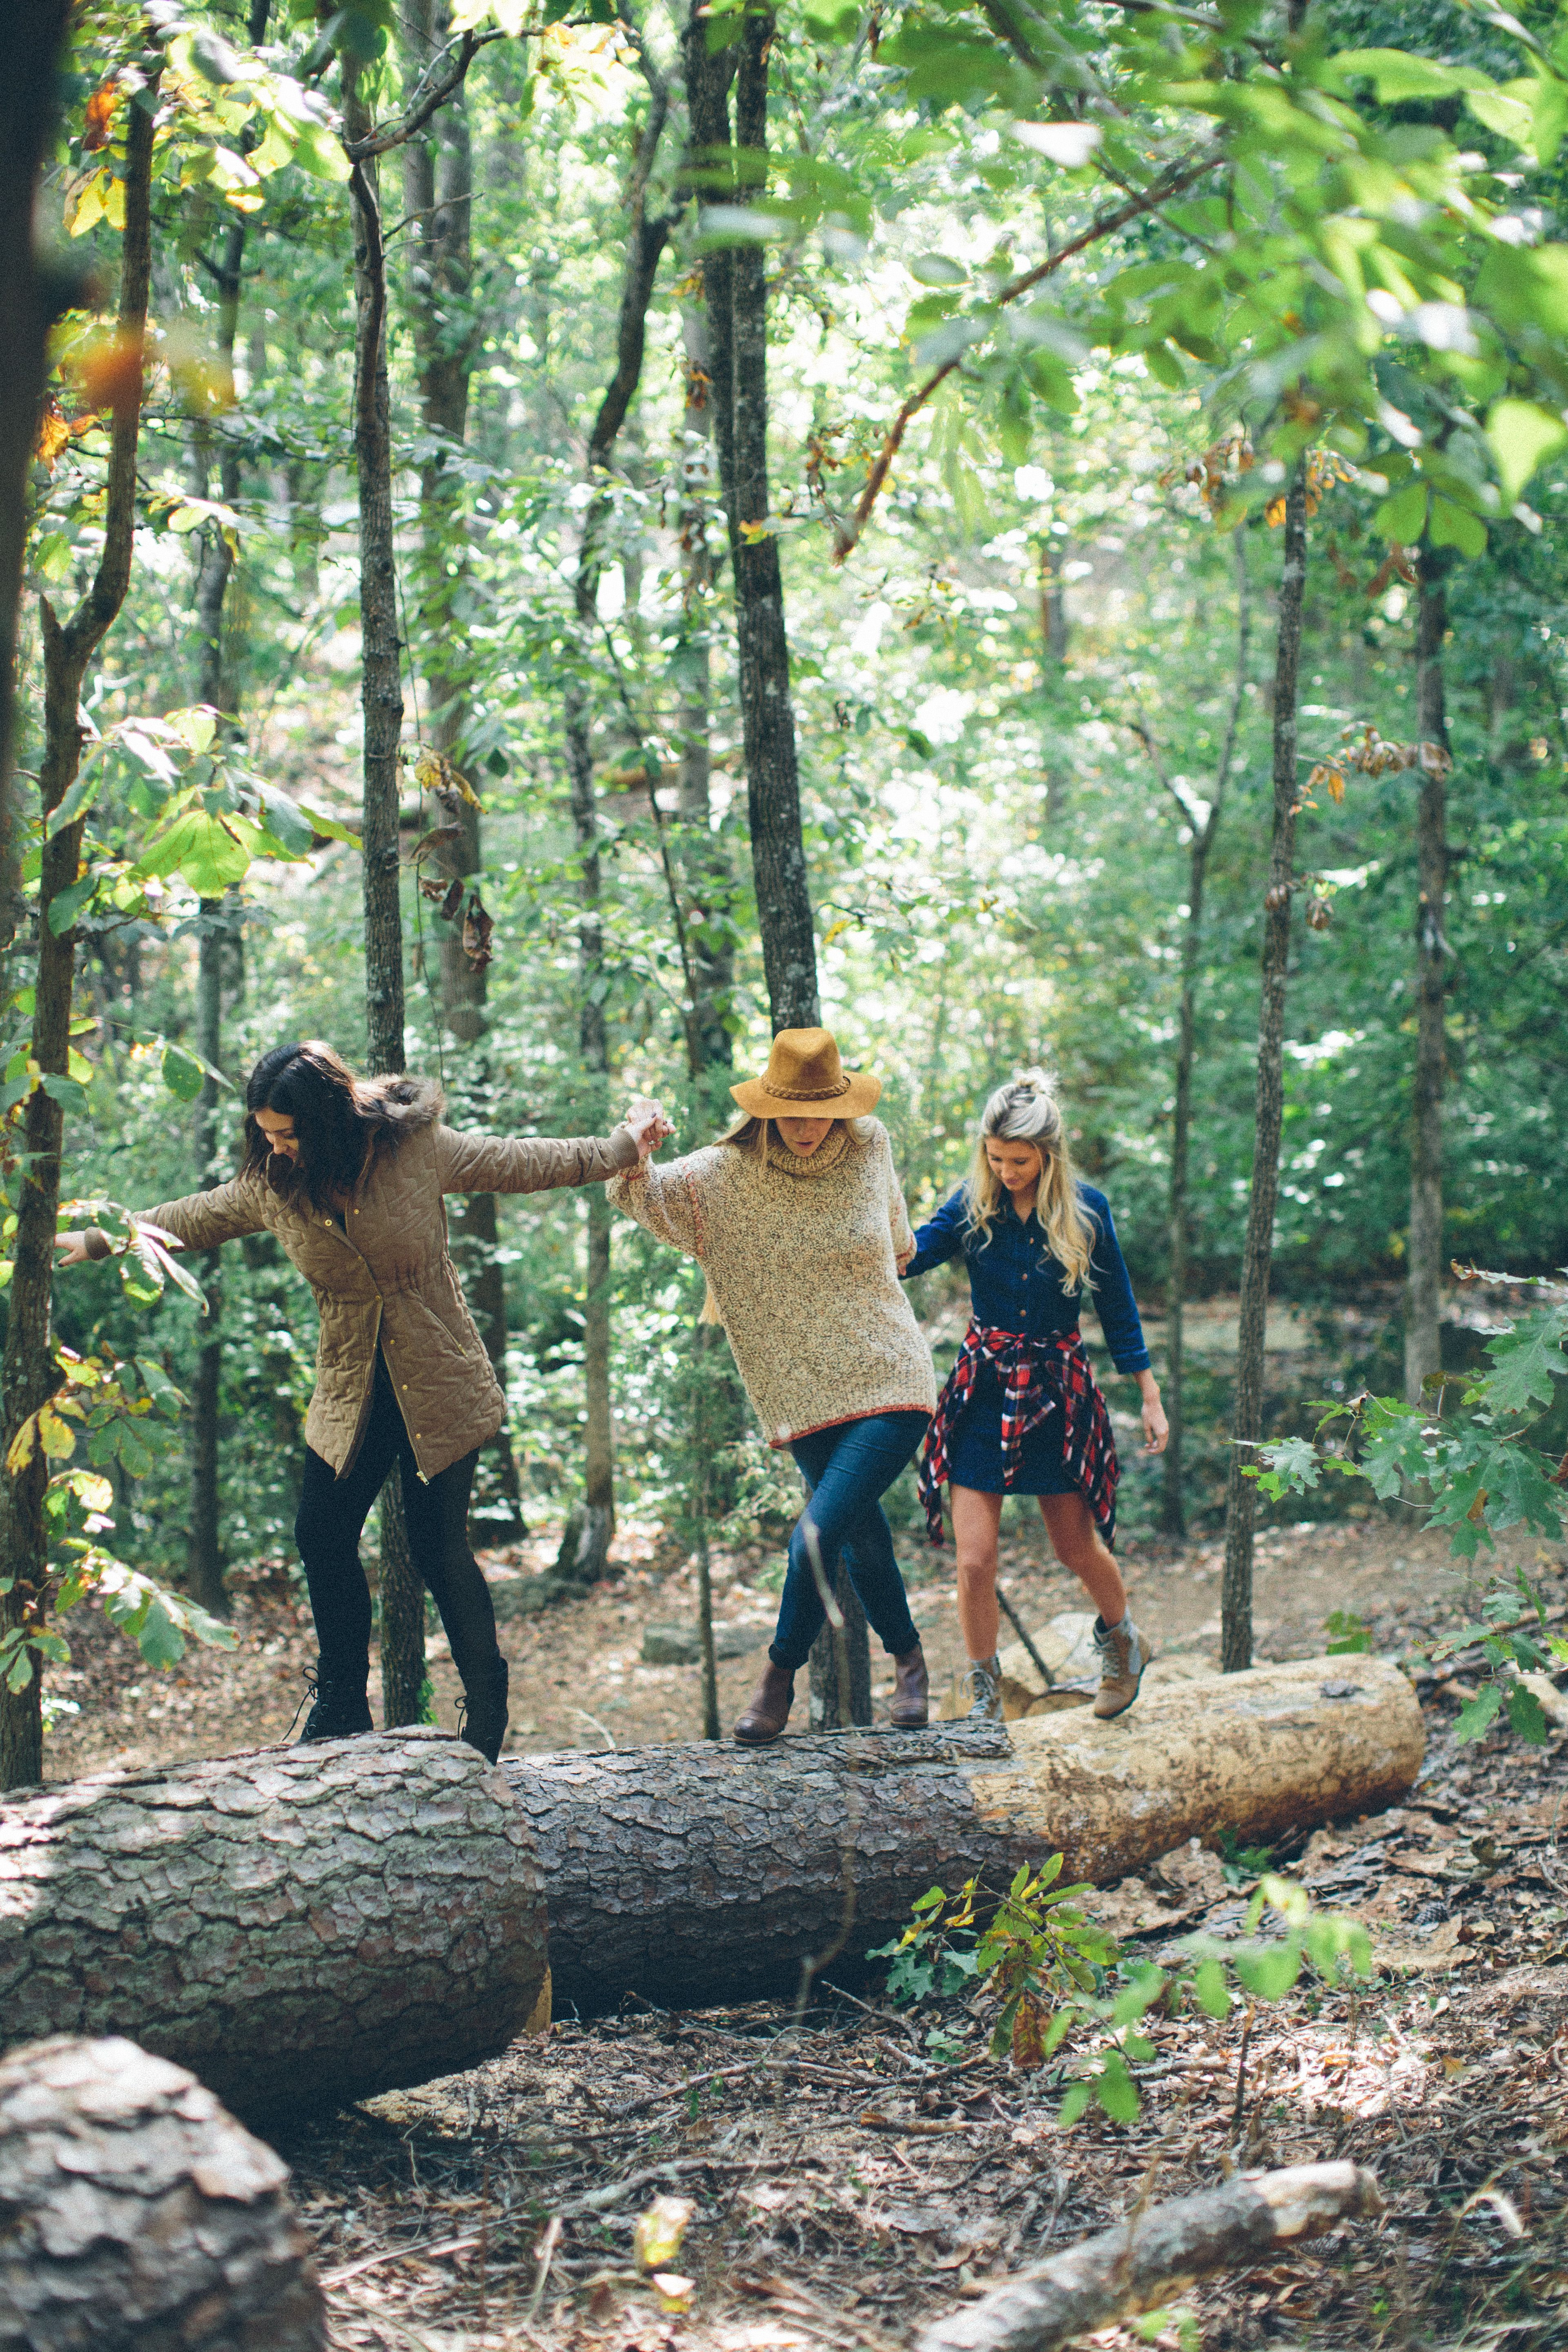 Our SOREL photoshoot was one of the most fun we've had at the Peach! Mixing together fashion and the outdoors allows us to get creative with our wardrobe and have fun!